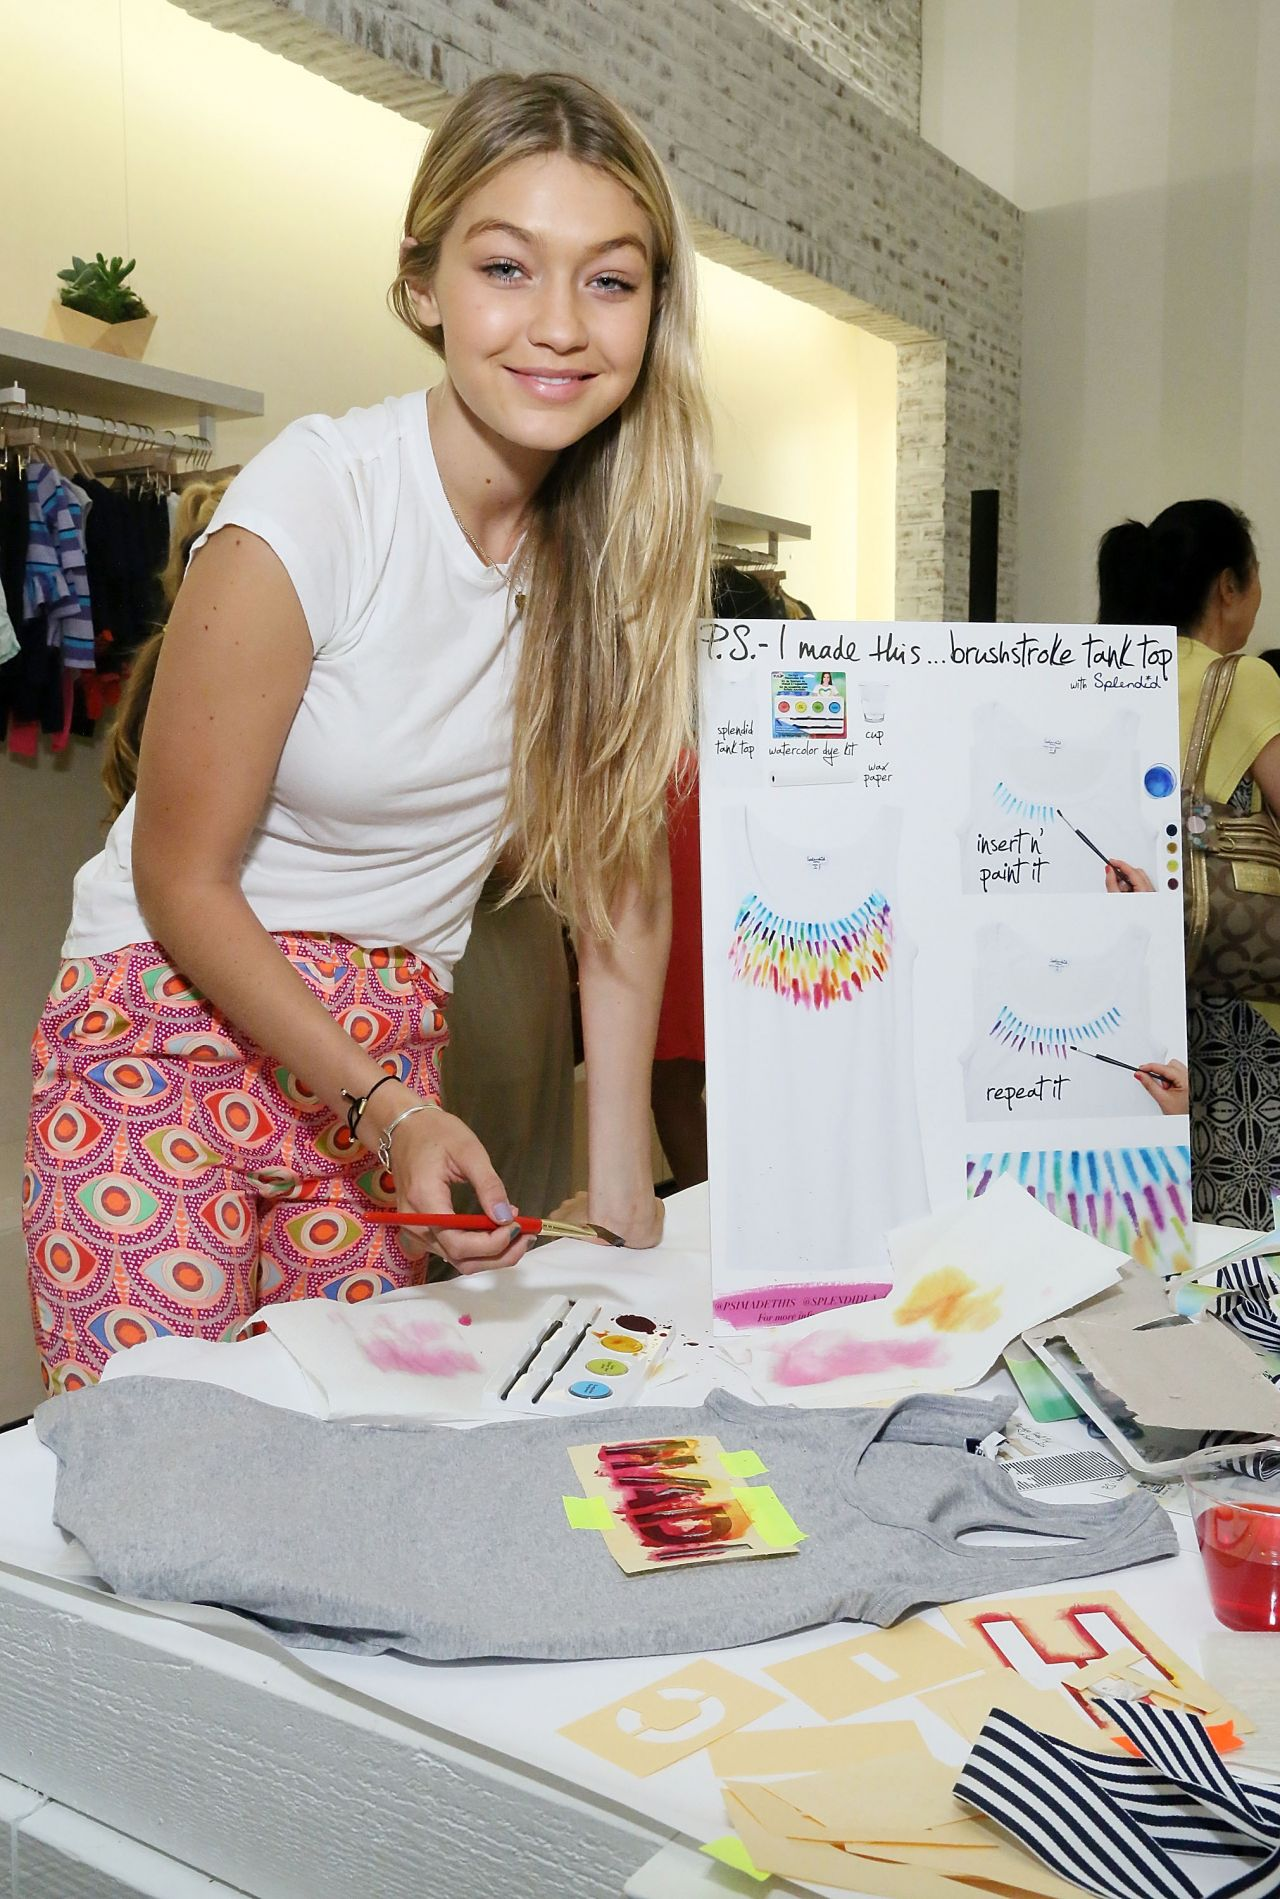 Gigi Hadid at Splendid Tanktastic Summer Party in NYC, July 2014